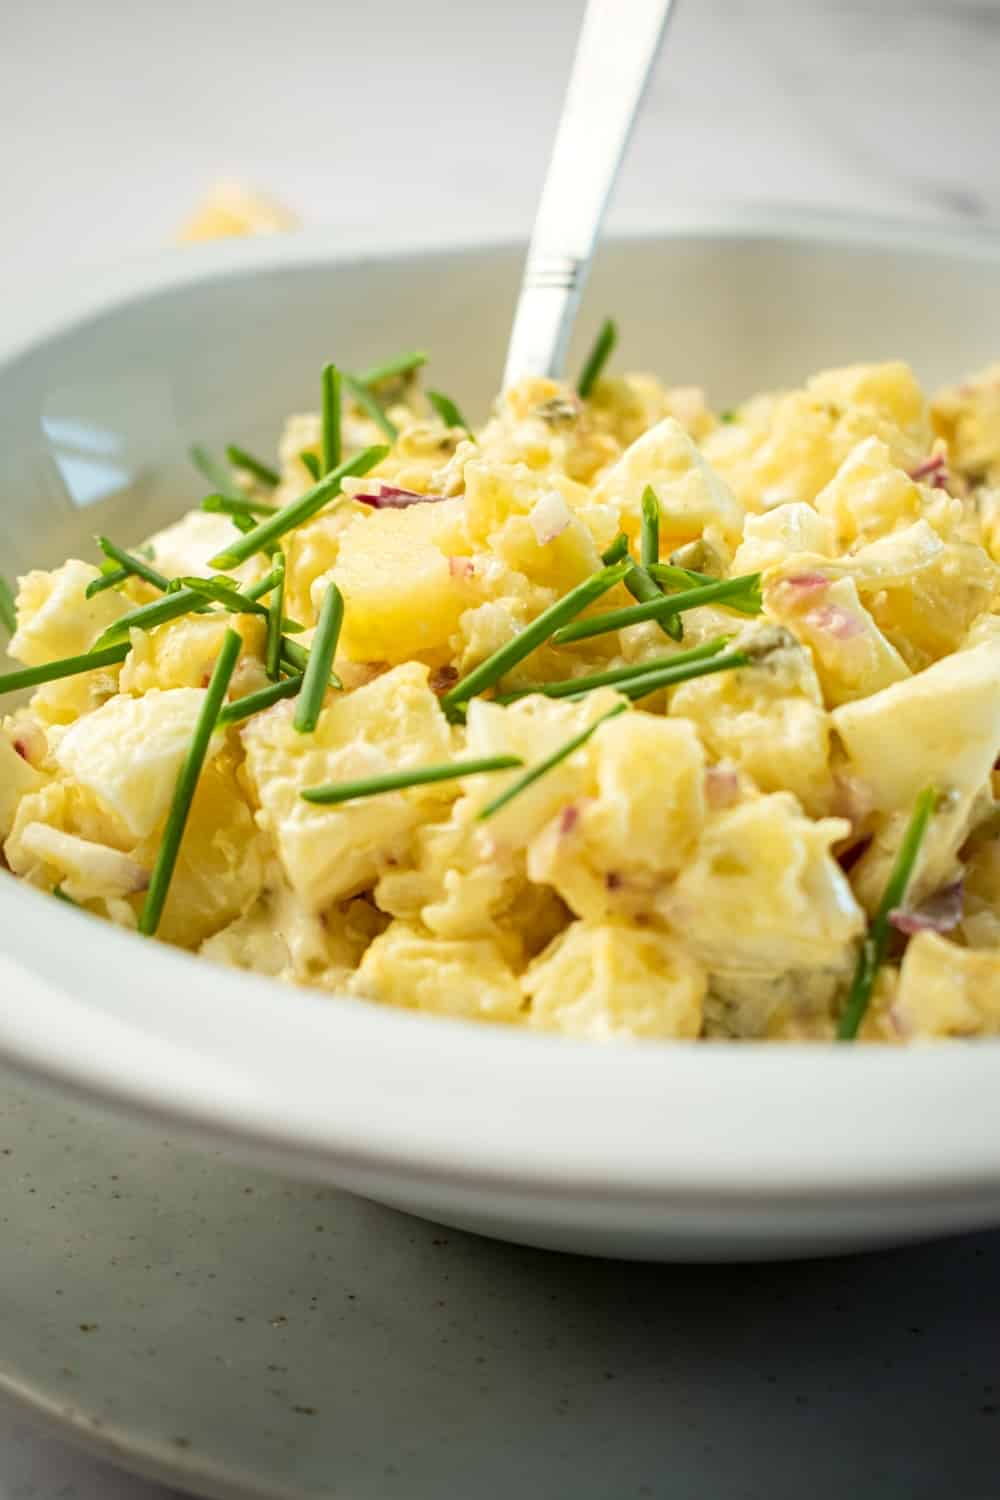 A white bowl with potato salad in it.